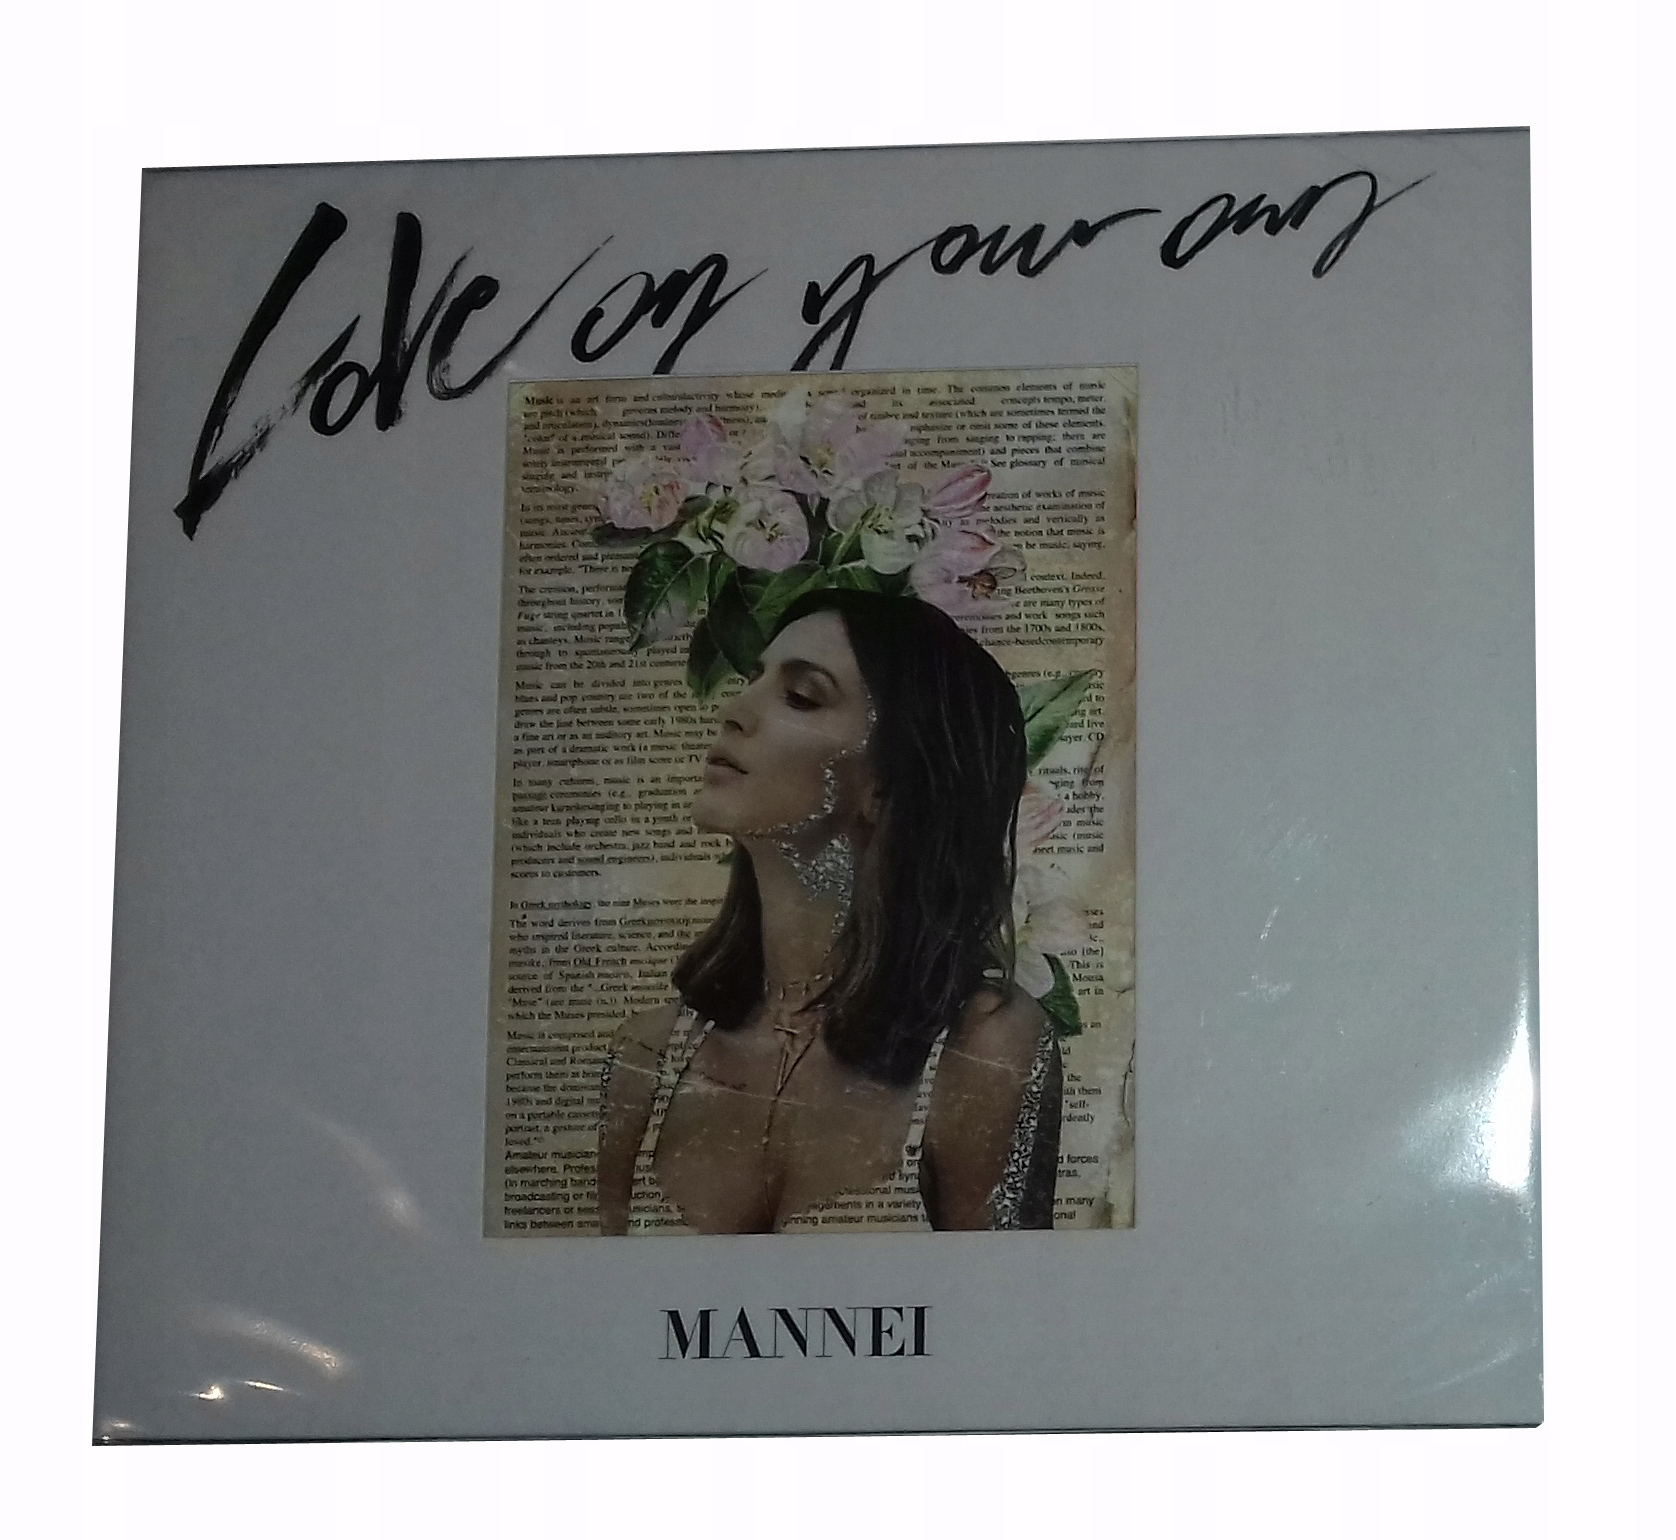 MANNEI LOVE ON YOUR OWN CD FOLIA